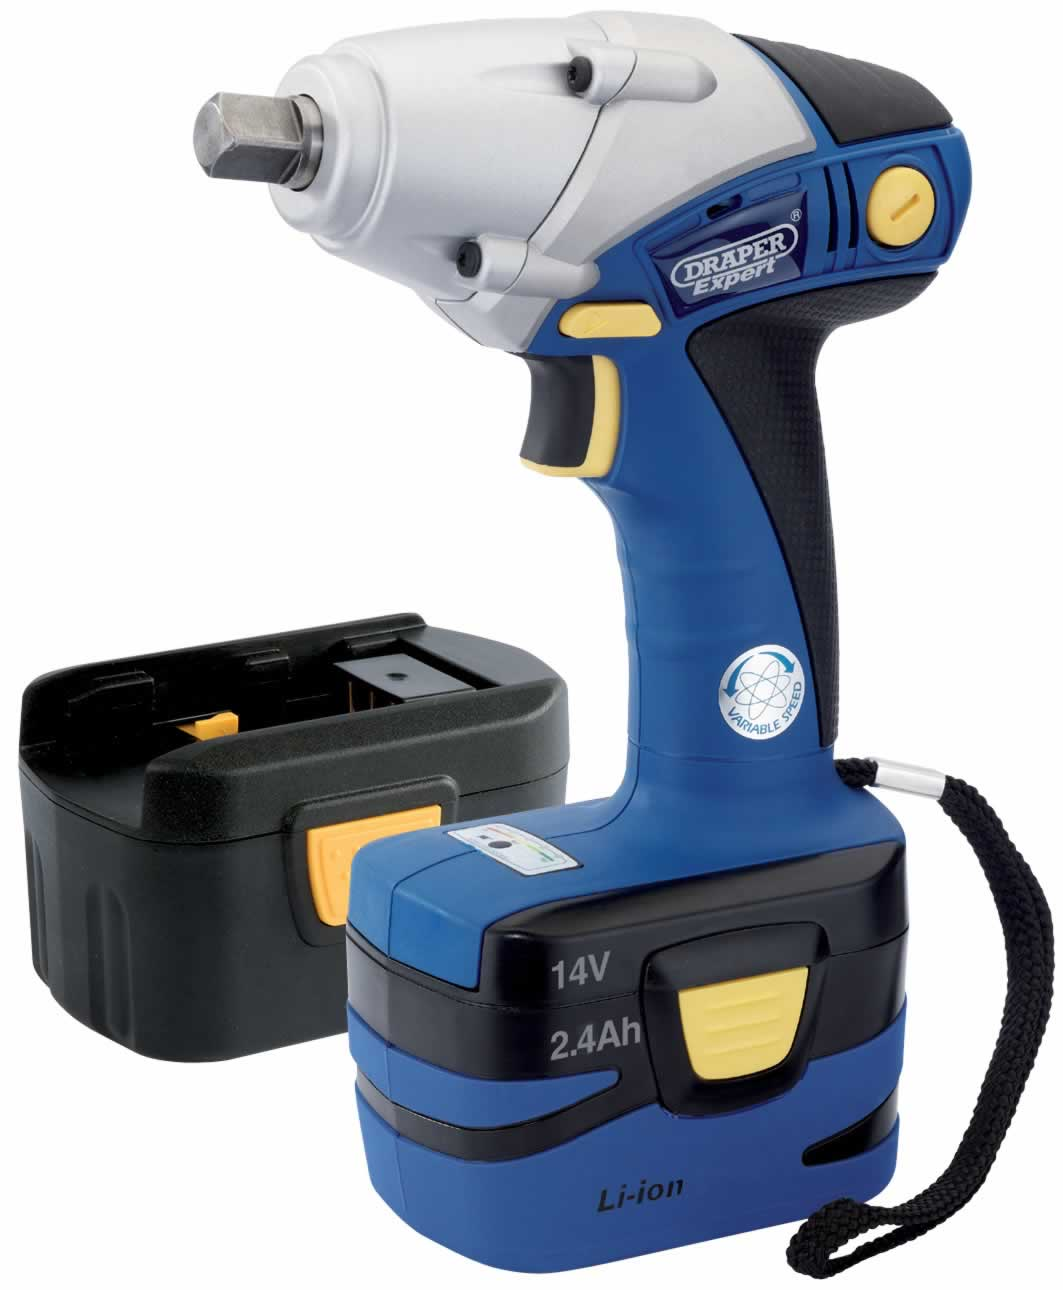 "EXPERT 14.4V CORDLESS 1/2"" Sq. Dr. IMPACT WRENCH WITH ONE LI-ION BATTERY AND ONE Ni-CD BATTERY"